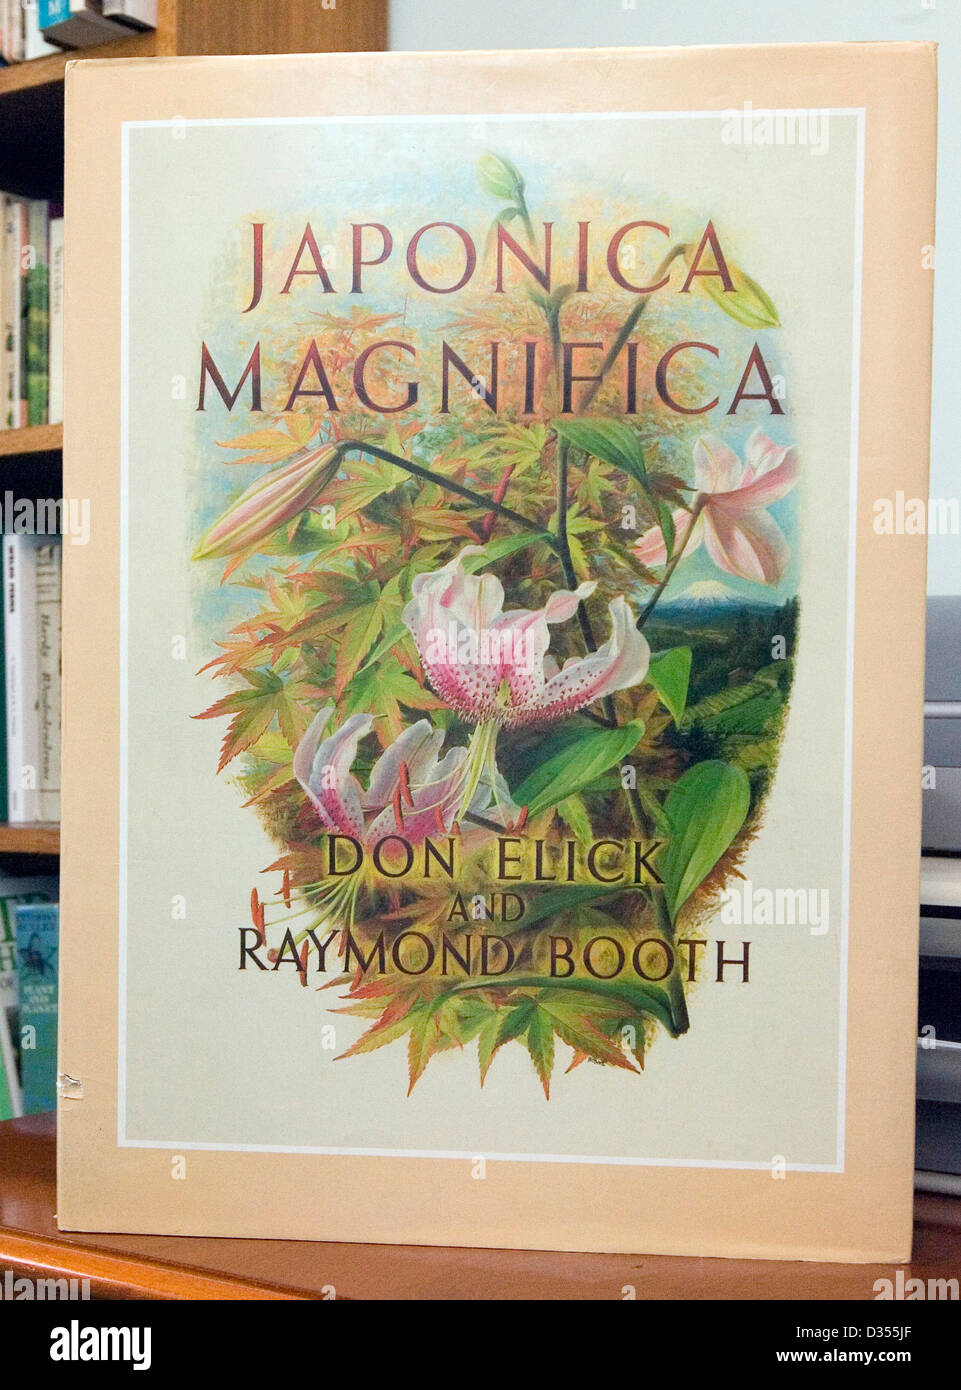 The plant reference book Japonica Magnifica. - Stock Image